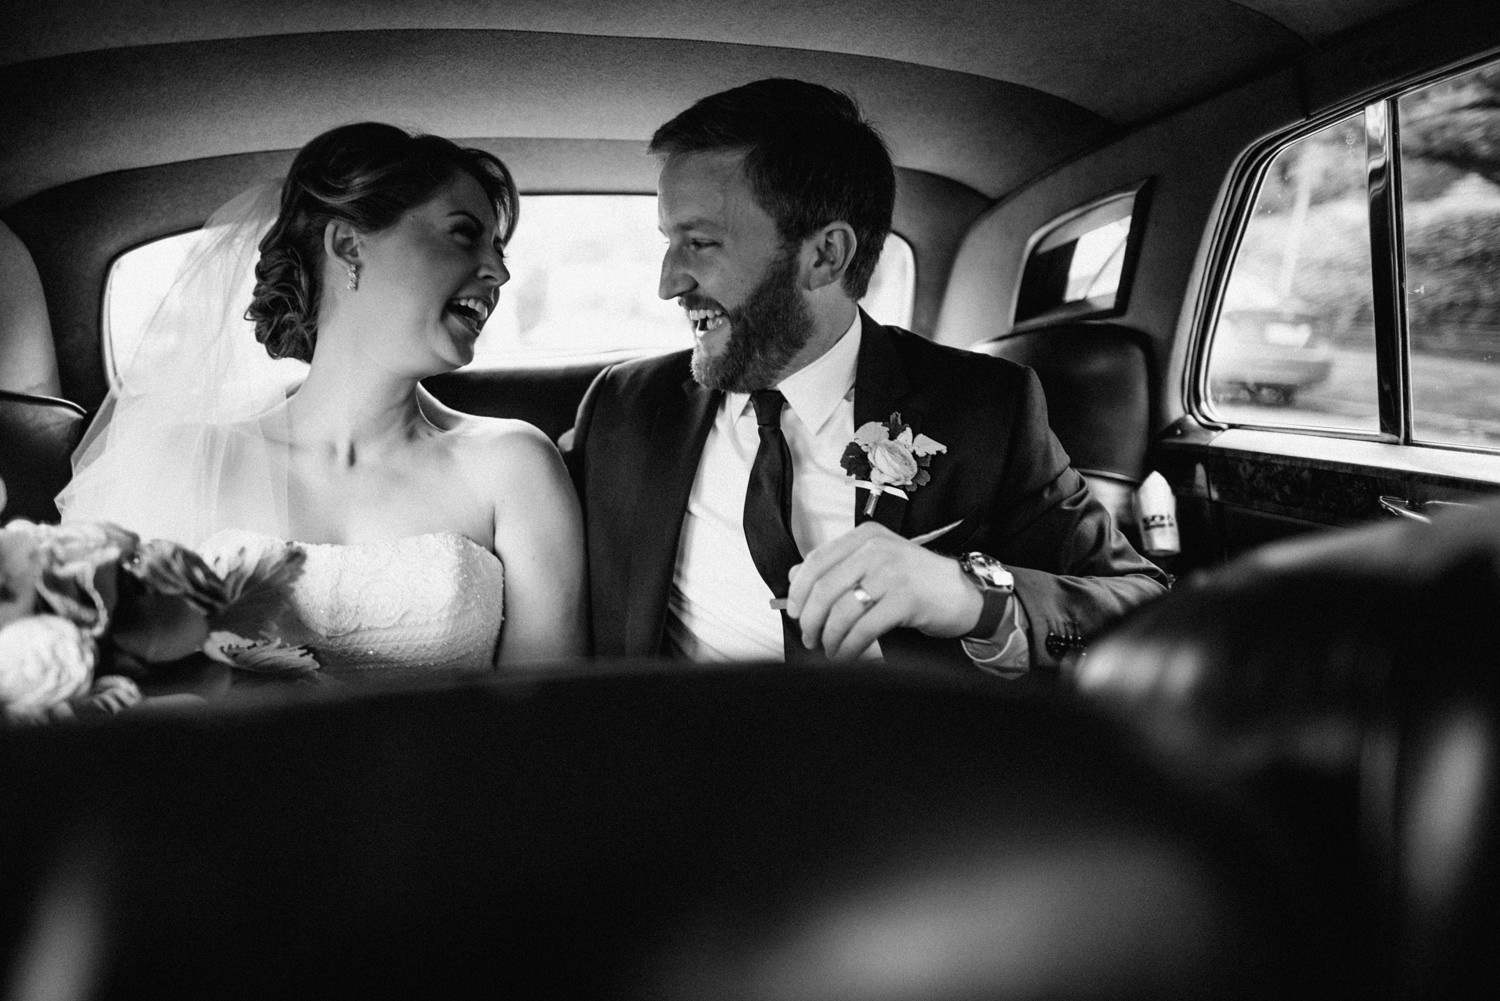 ryan-flynn-best-wedding-photography-2015-seattle-film-photographer-0147.JPG